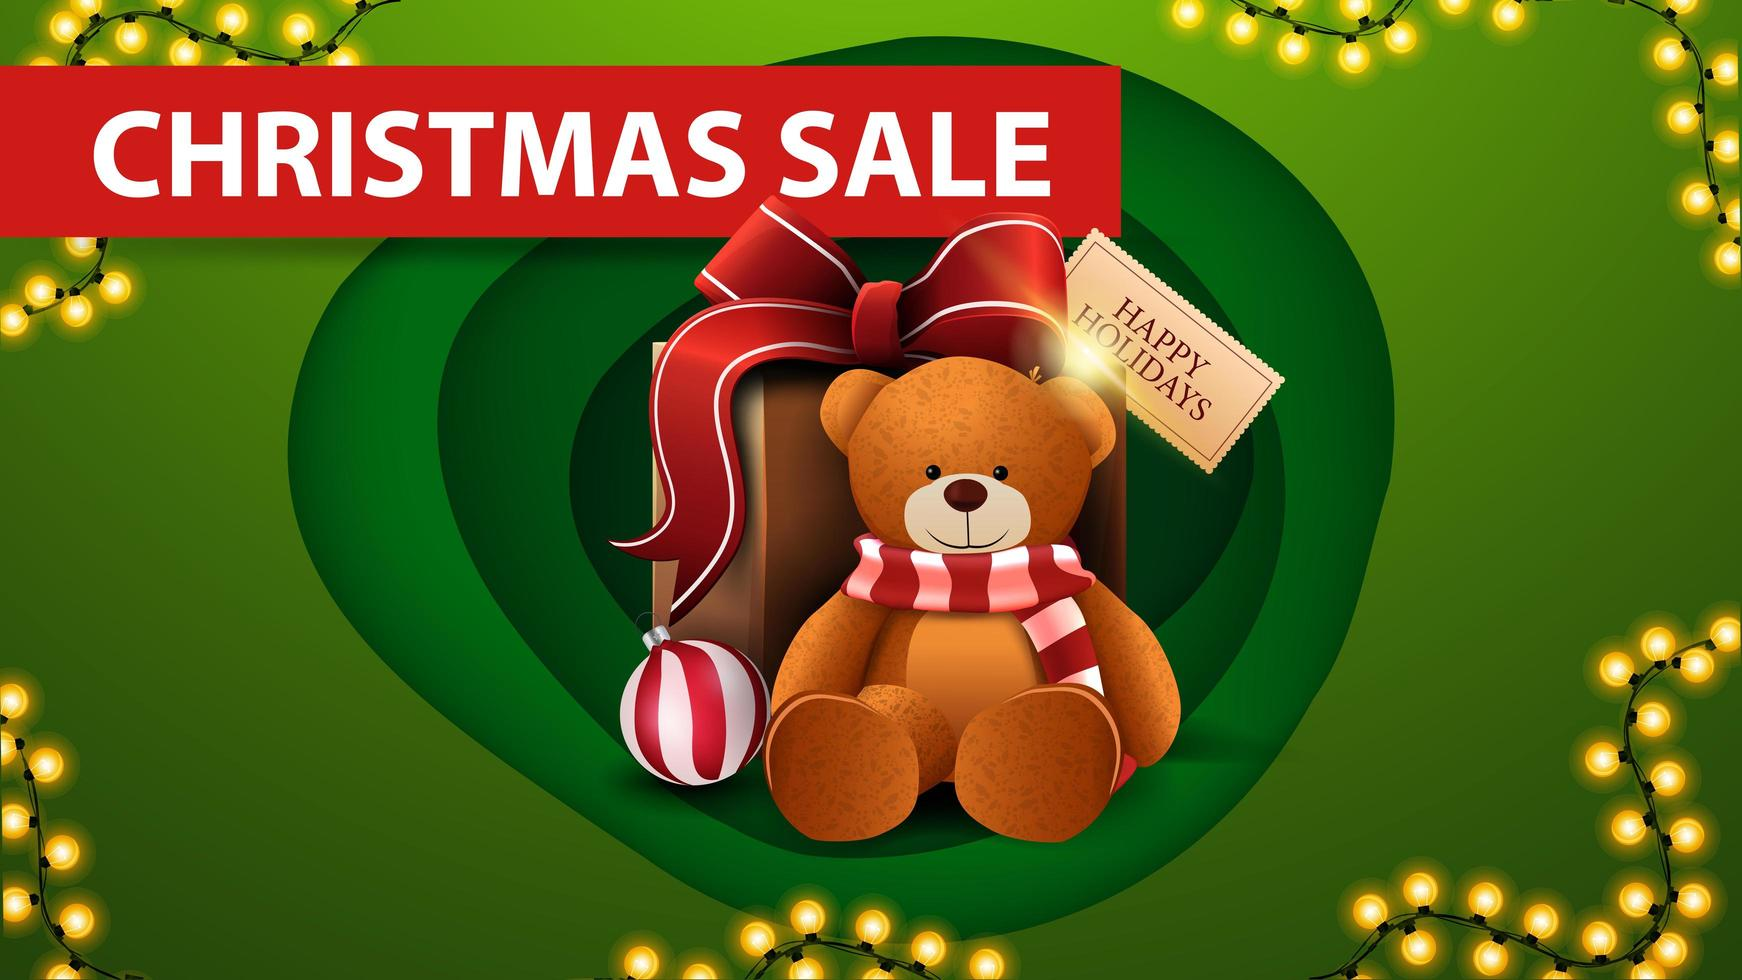 Christmas sale, green discount banner in paper cut style, garland and present with Teddy bear vector